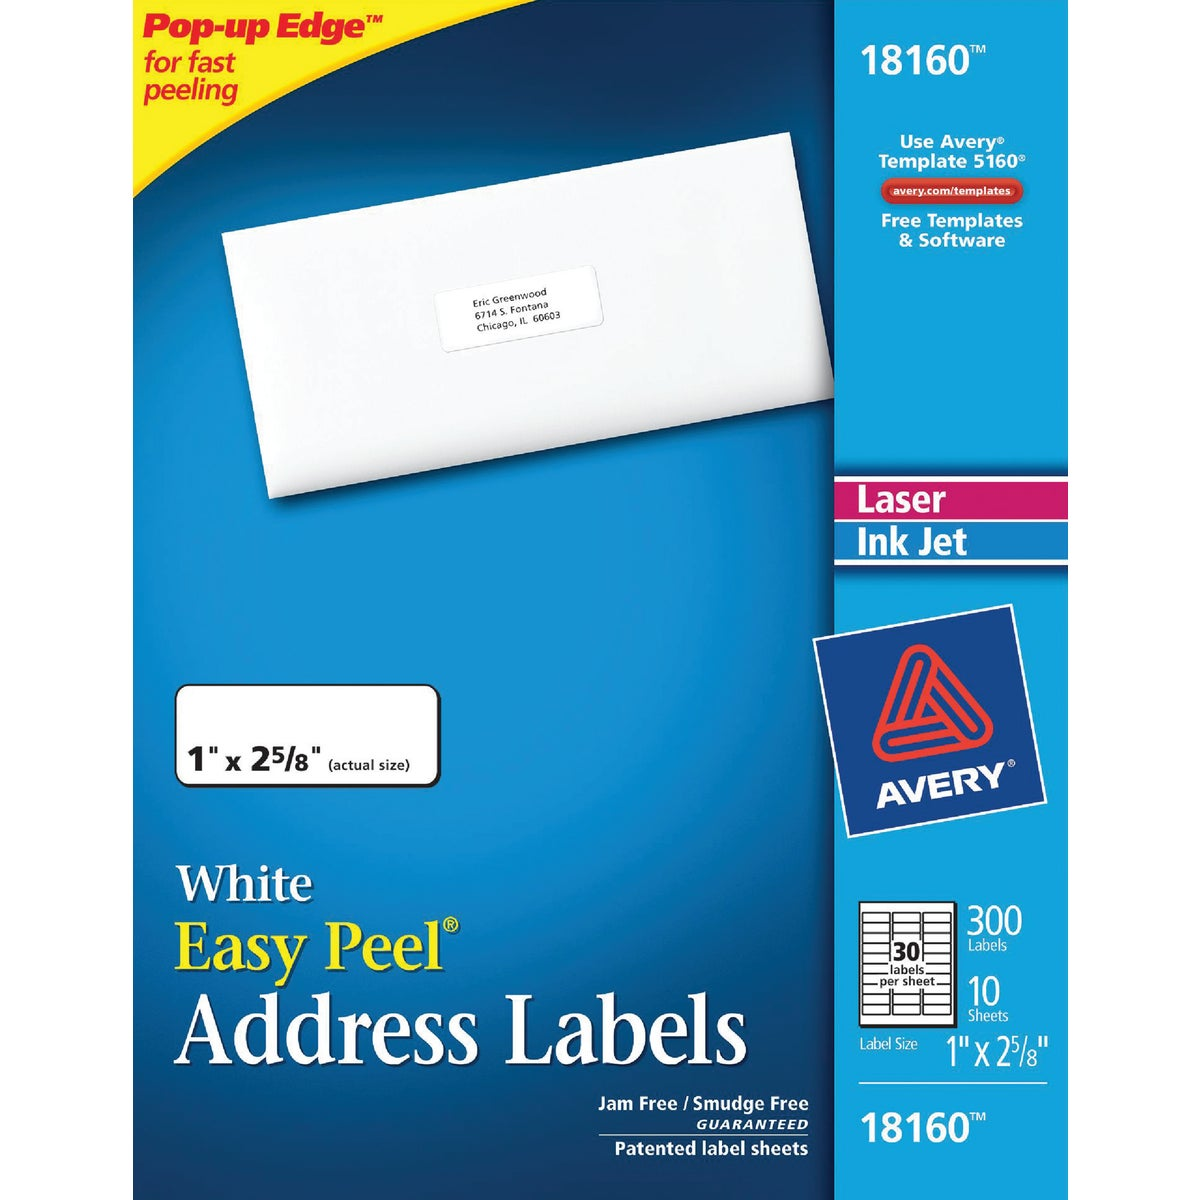 300PK 1X2-5/8 MAIL LABEL - 18160 by Avery Dennison